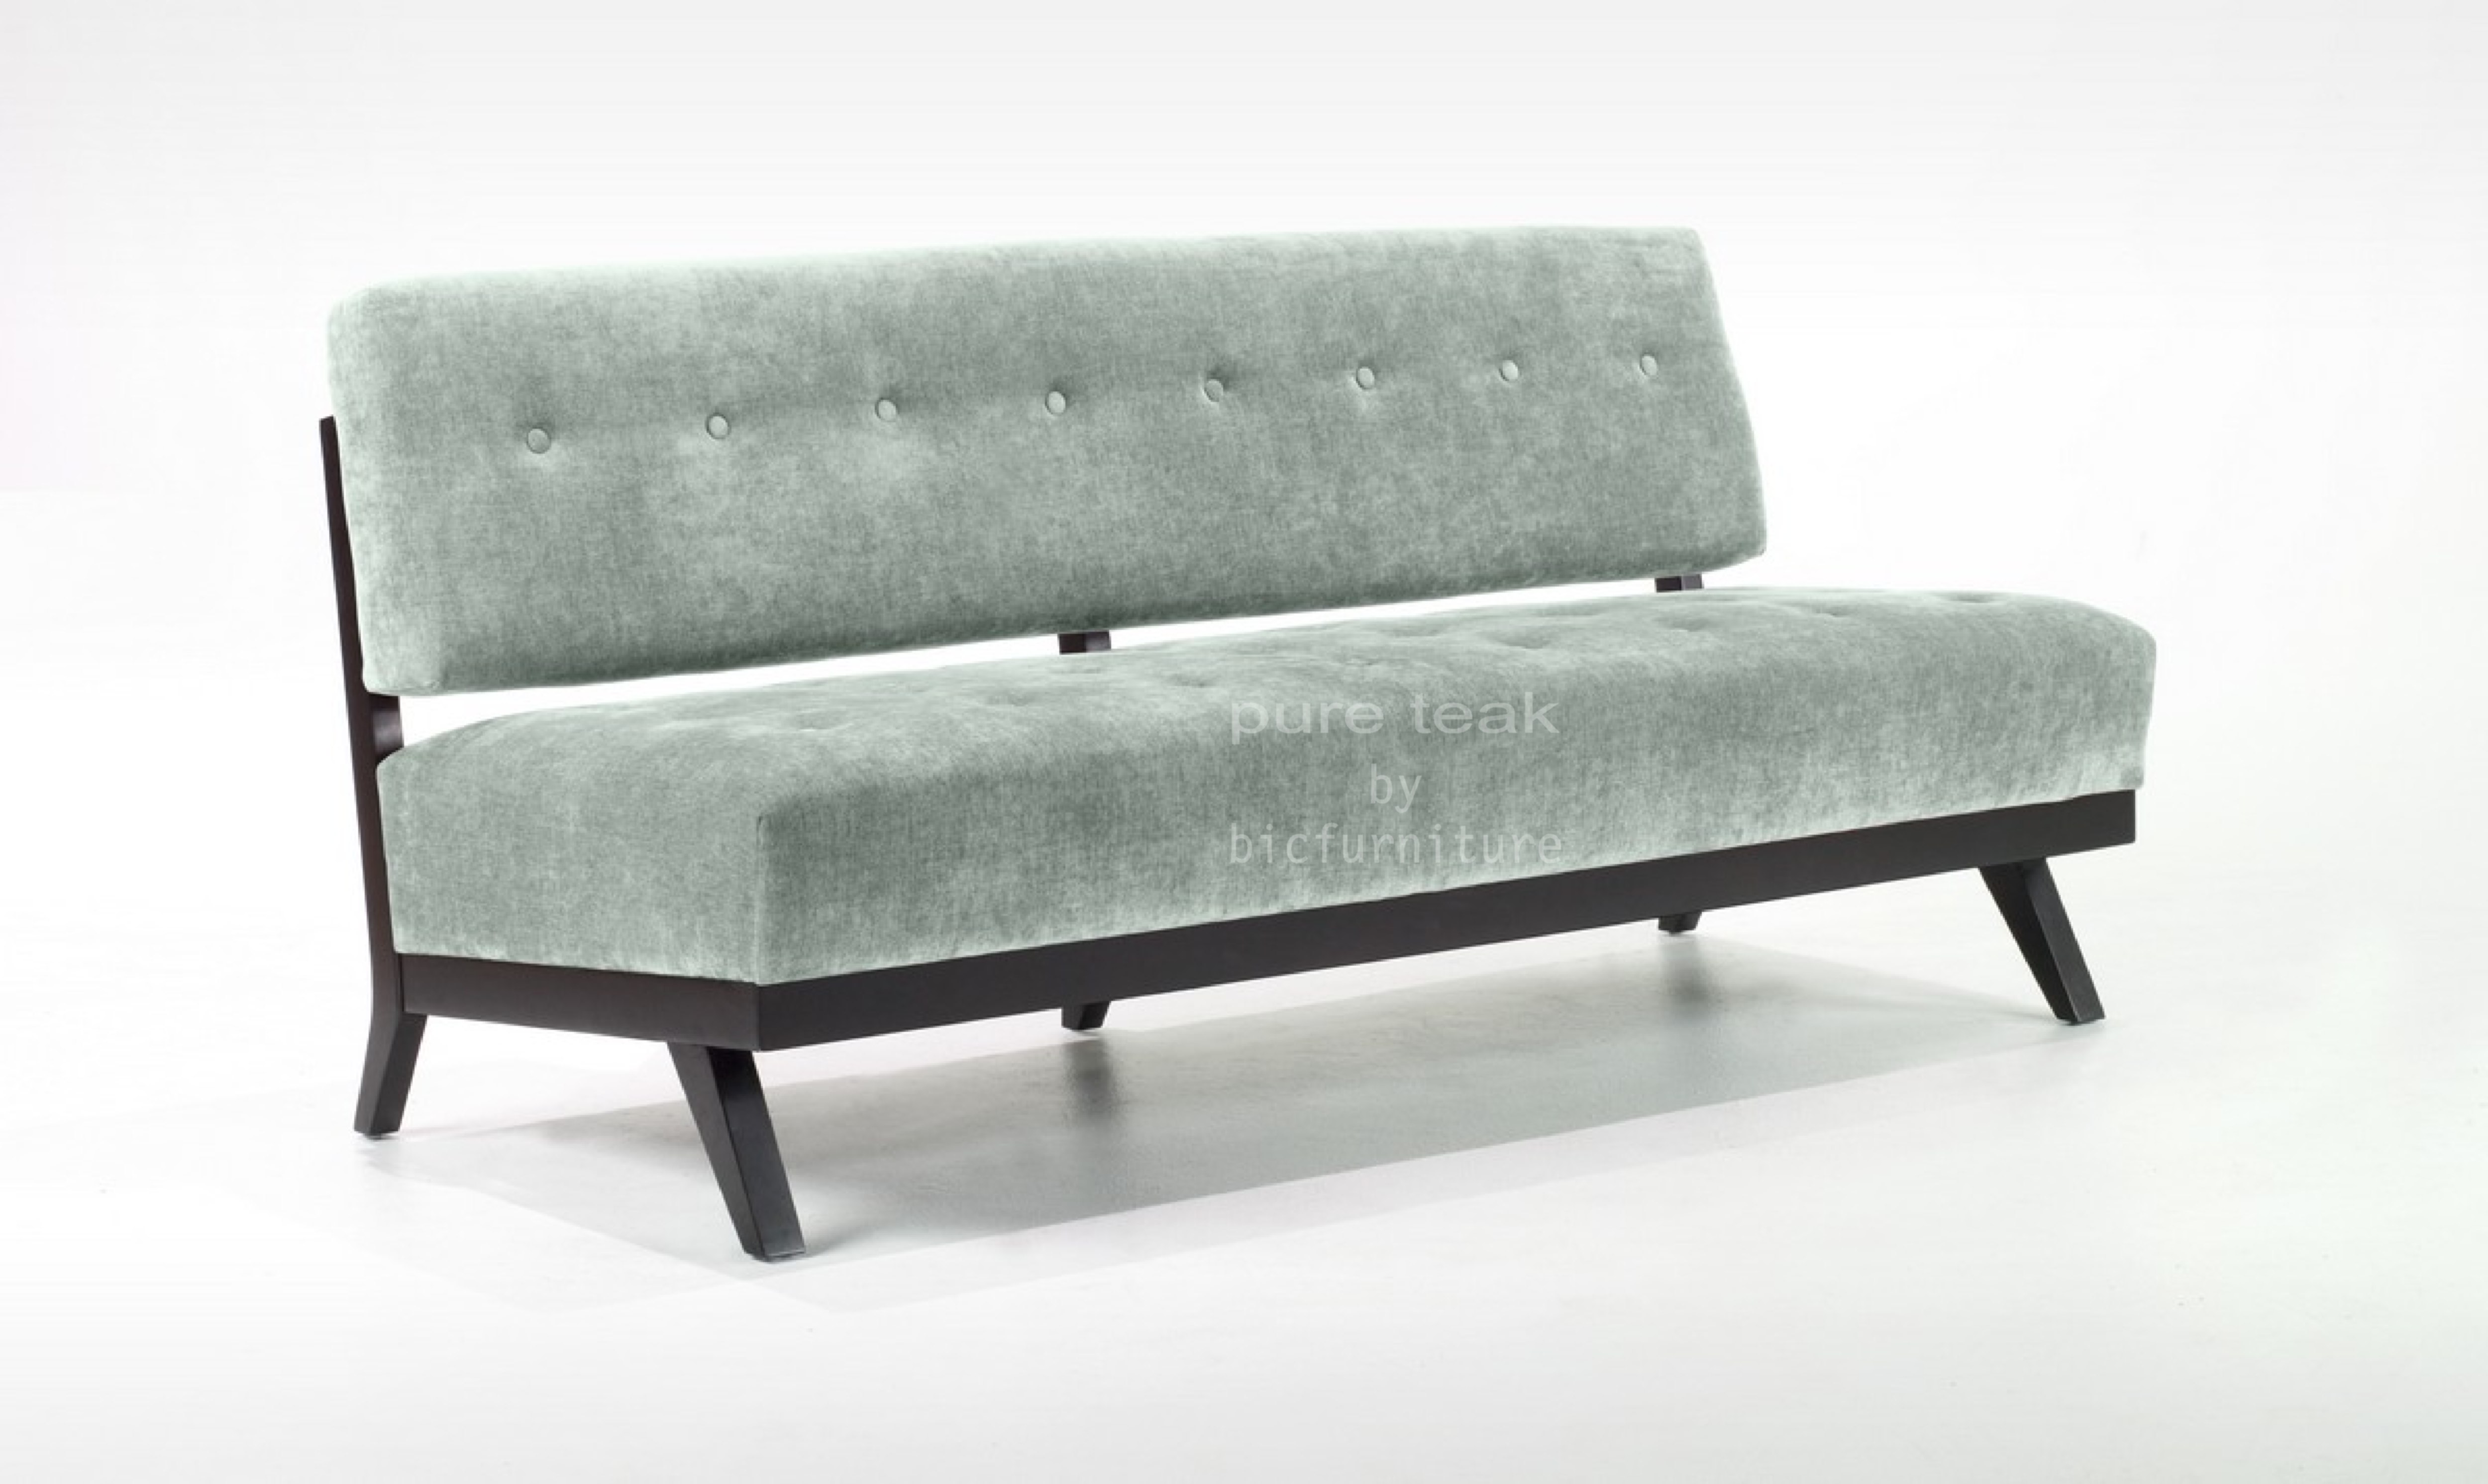 Modern design 3 seater sofa without handles FOS 3 Details